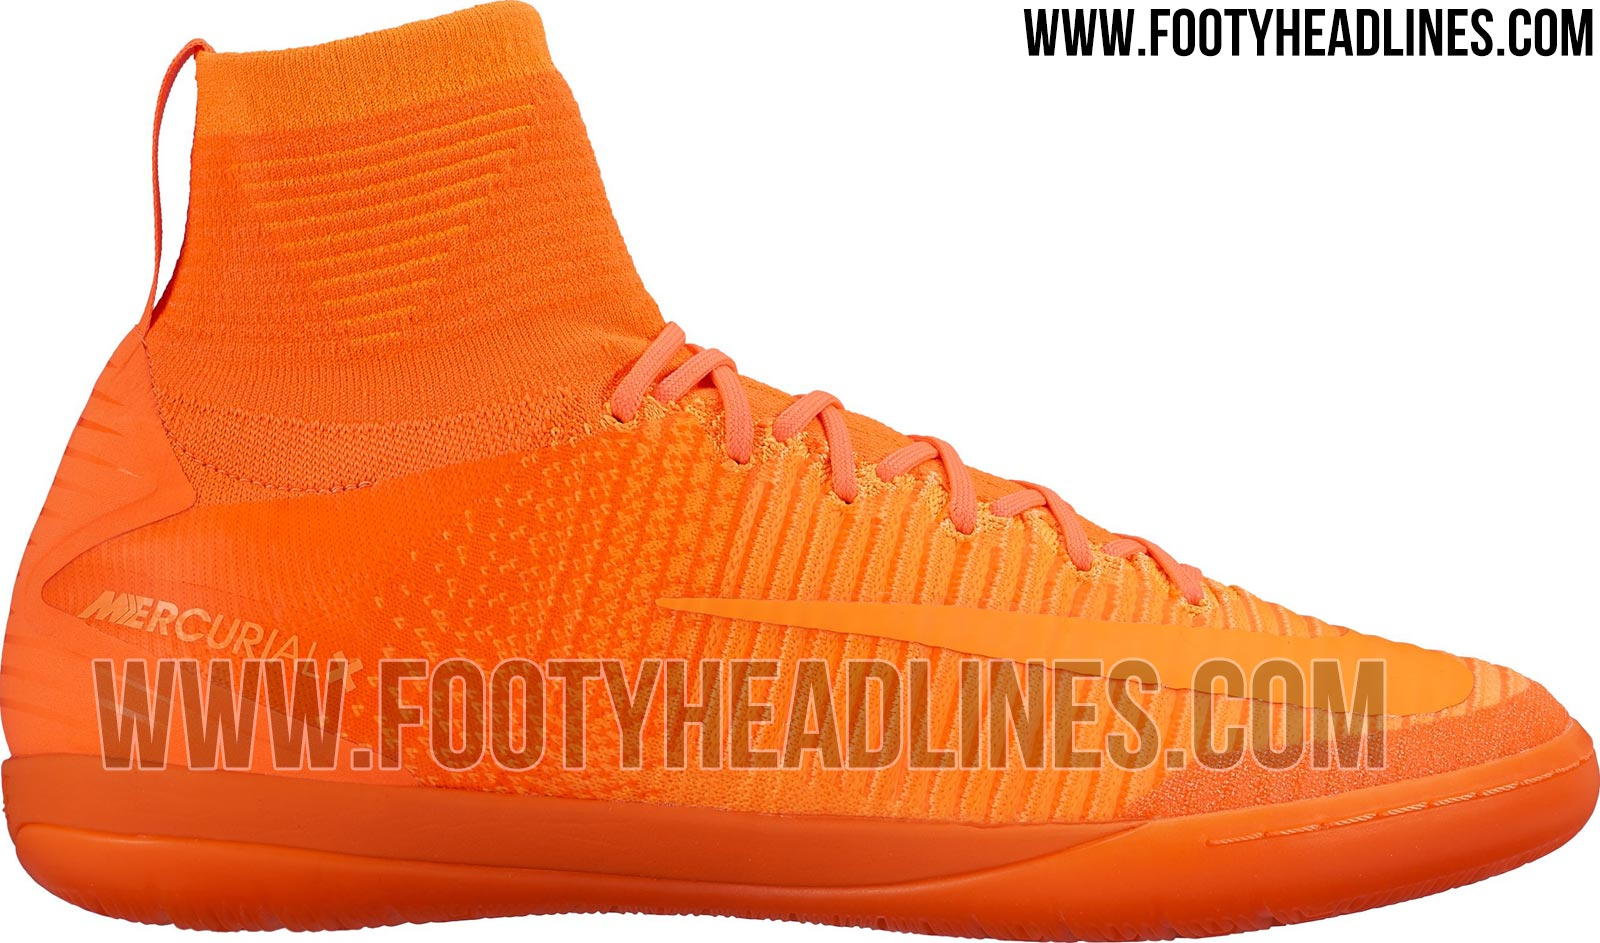 next gen nike mercurialx proximo ii boots leaked footy. Black Bedroom Furniture Sets. Home Design Ideas